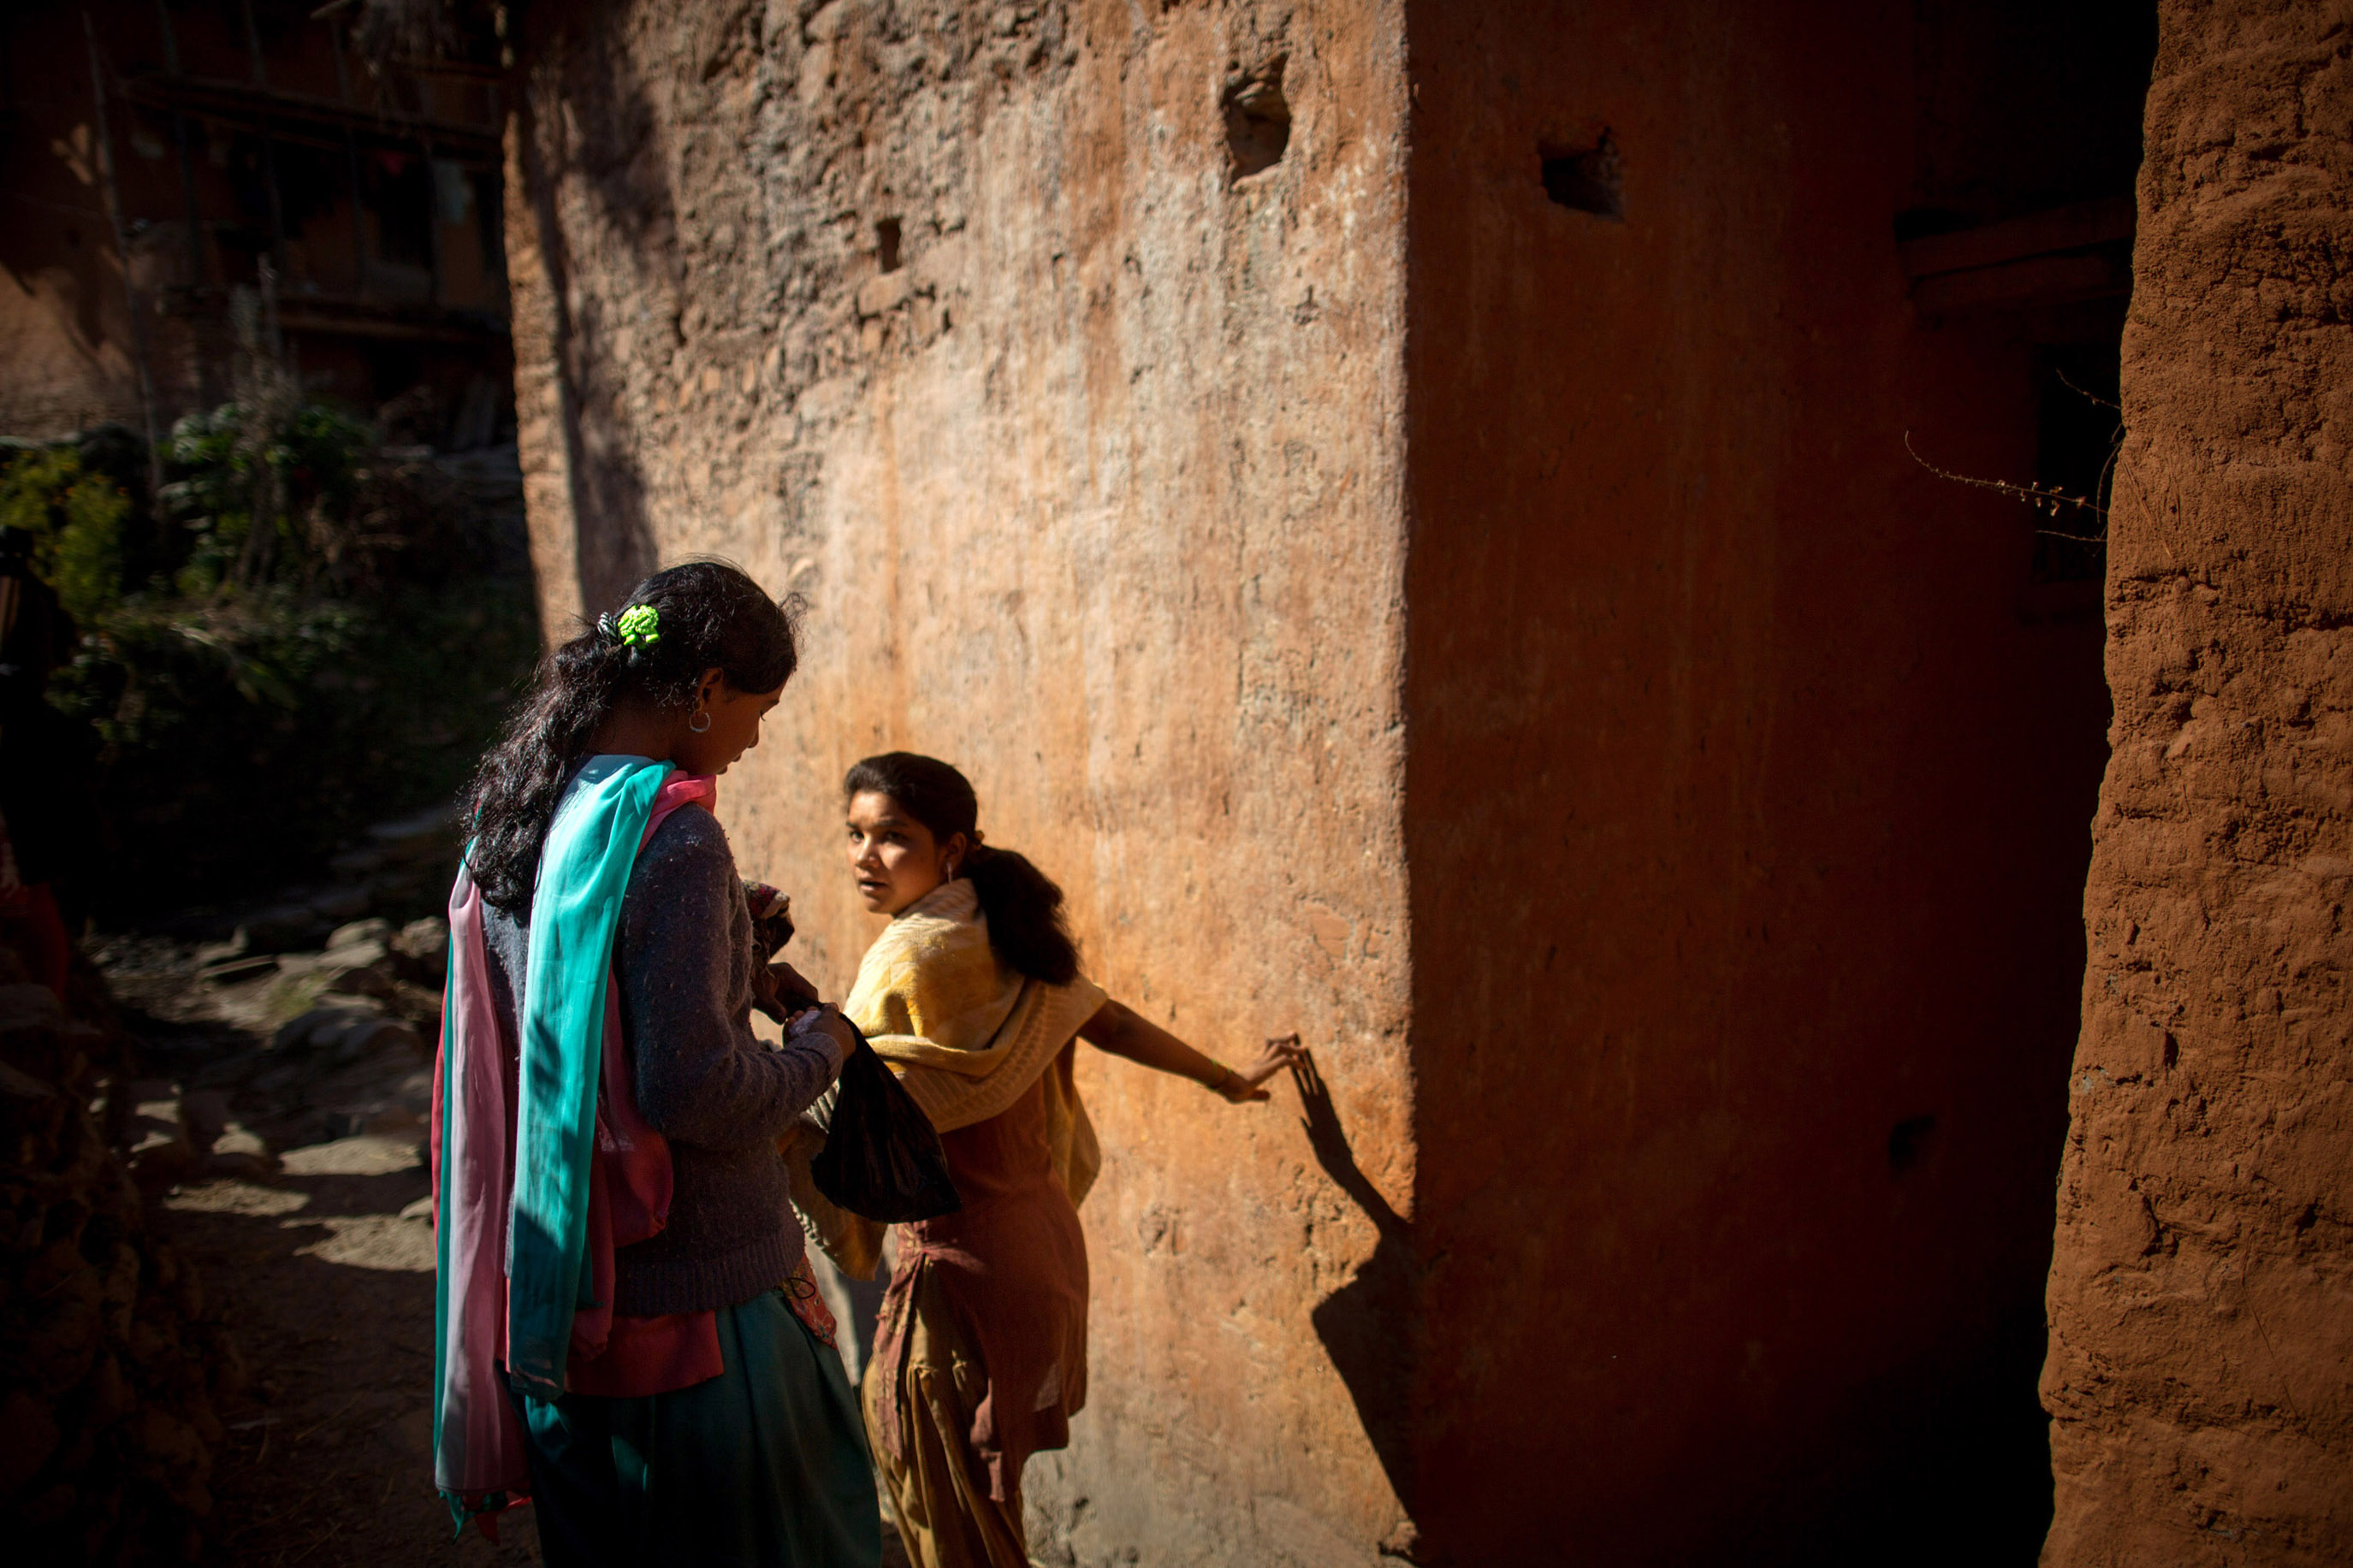 Radhika (left), 14, avoids touching others in her village as she takes a back path toward a water pump where girls practicing chaupadi are allowed to bathe, in Siddheshwar village, Achham, Nepal. During chaupadi, women may not use the regular village water sources, often walking long distances for obligatory daily washing.